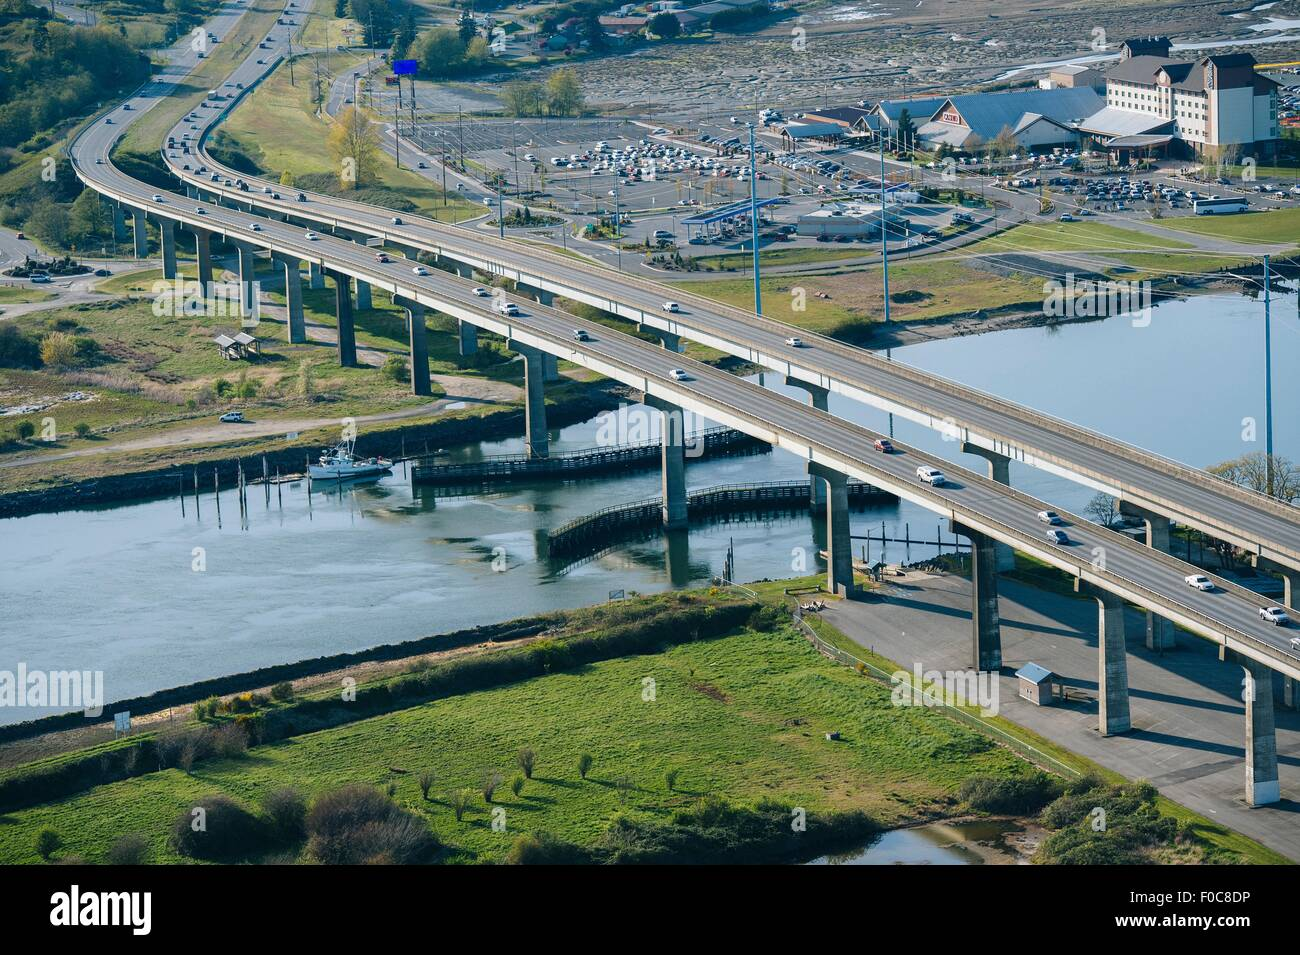 Aerial view of traffic on river highway flyover - Stock Image